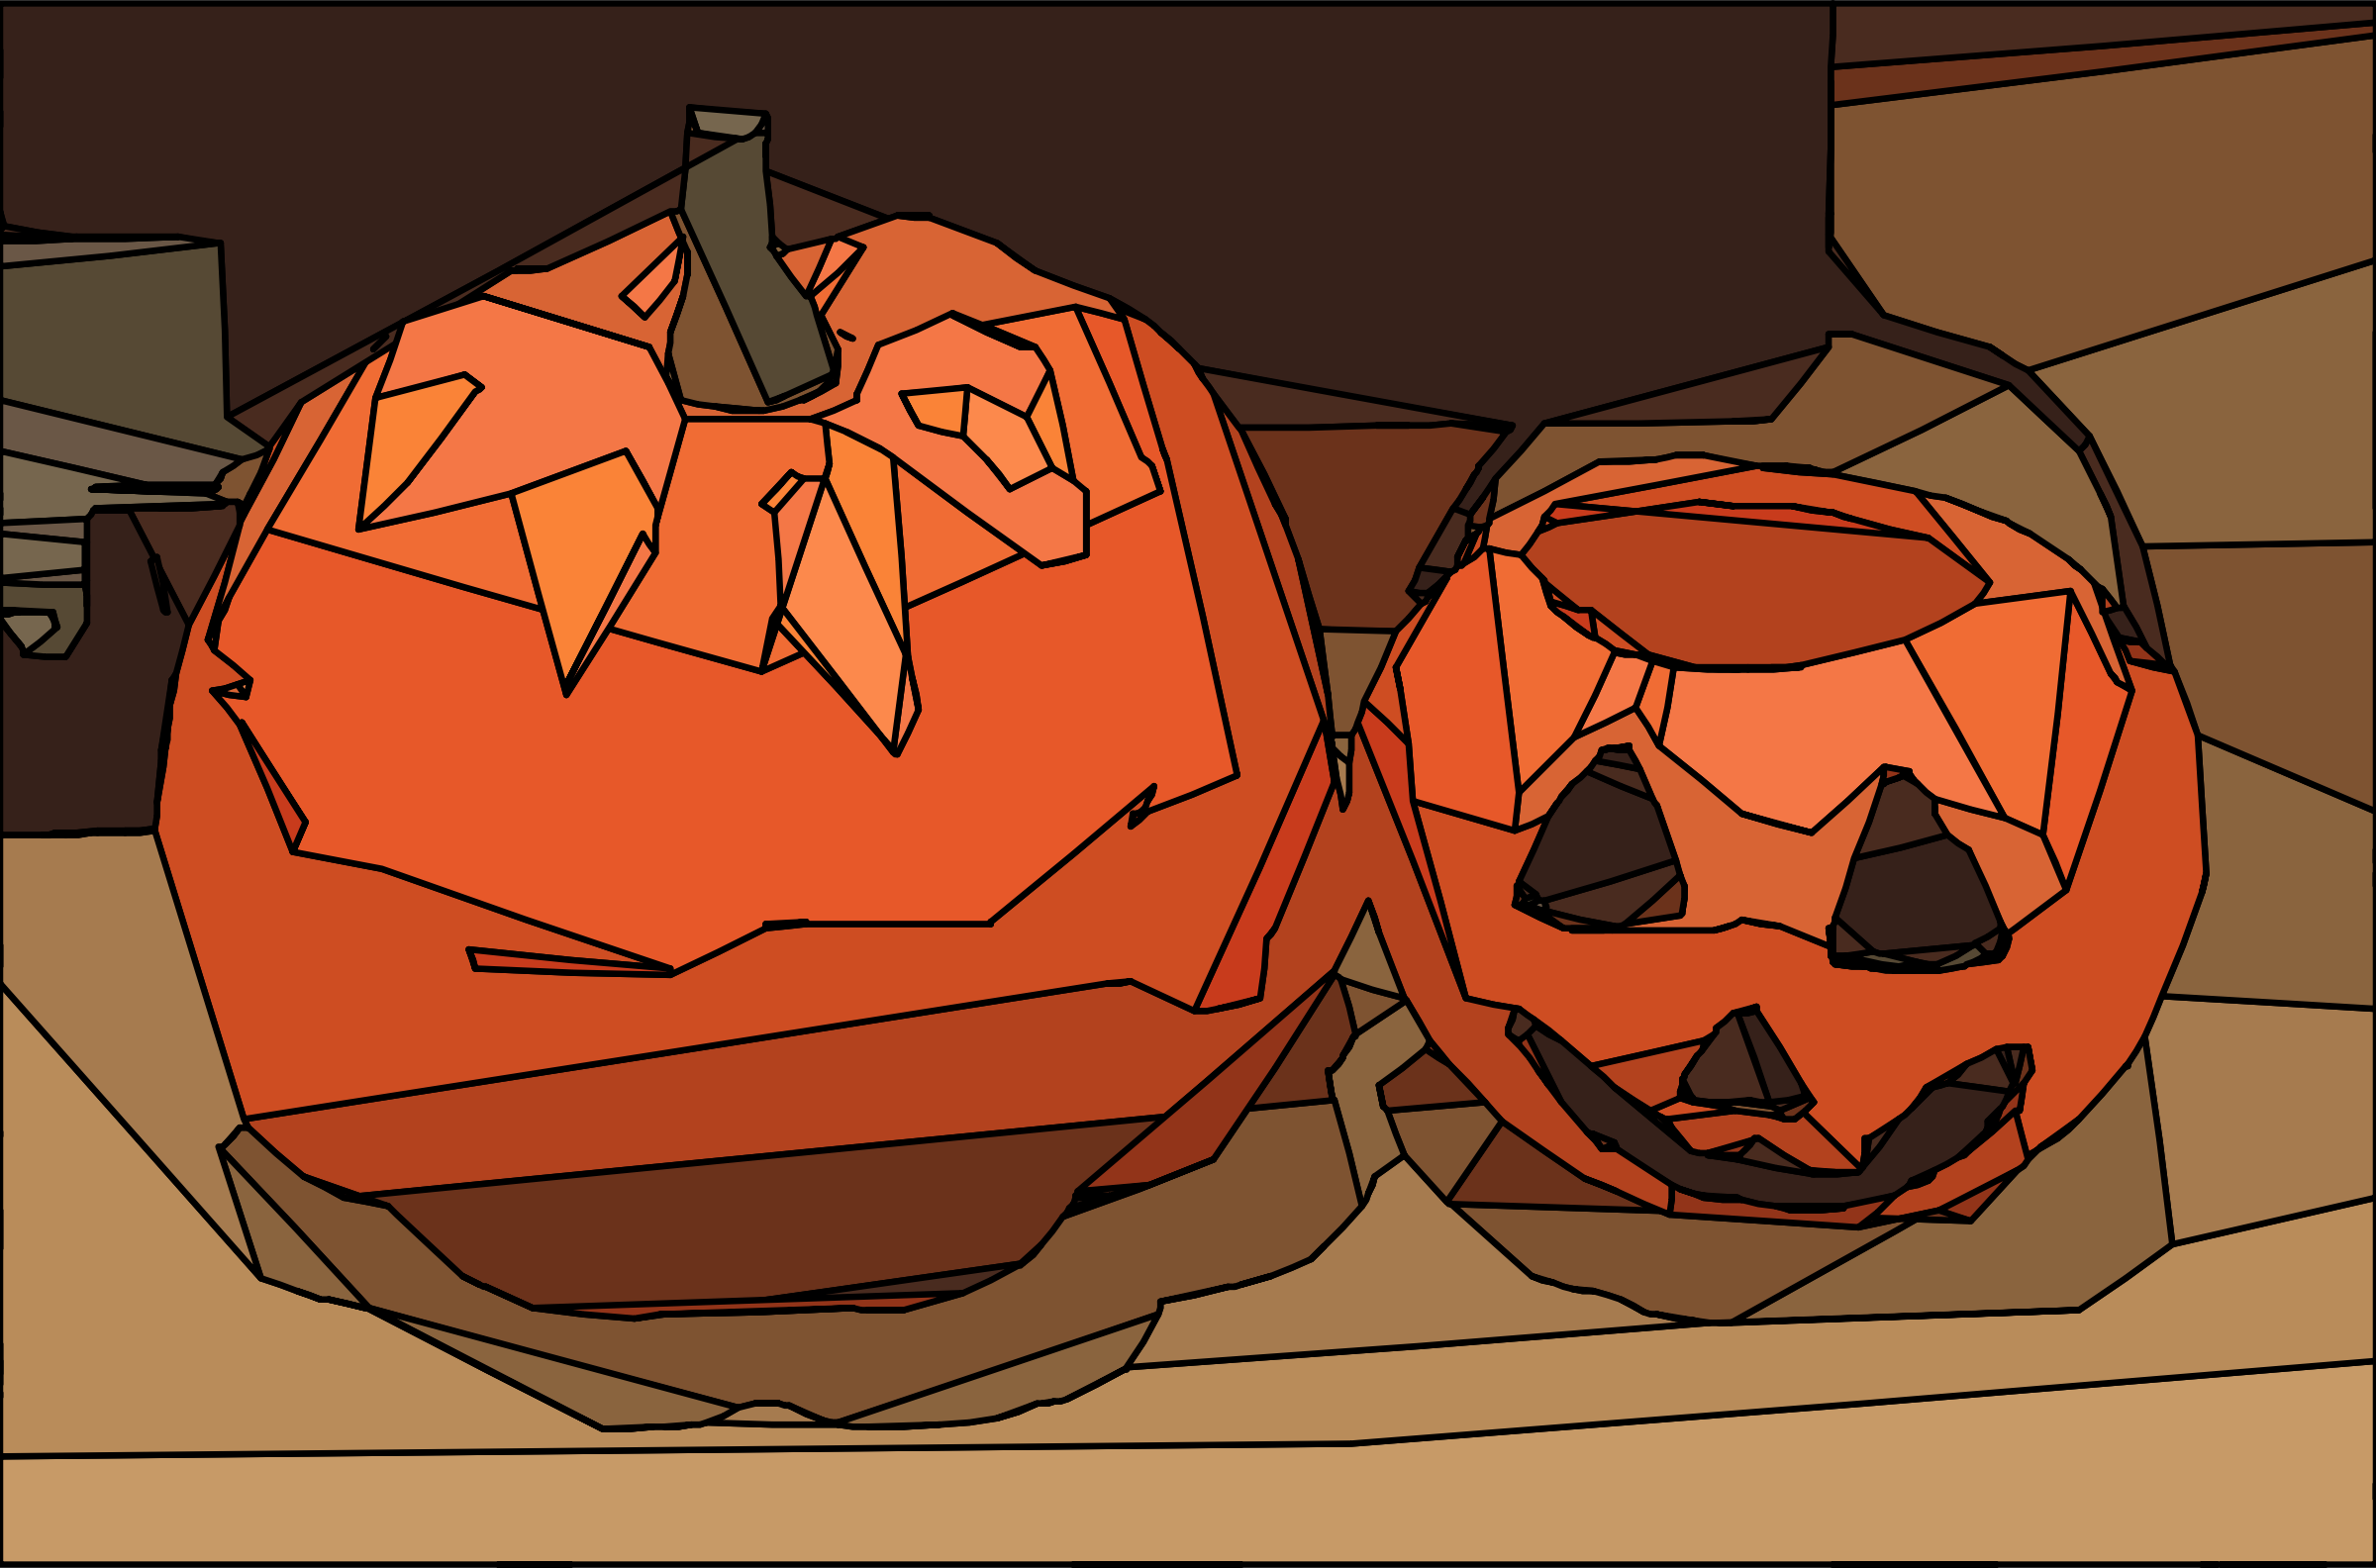 Pumpkin and Jack-o-Lantern by j4p4n